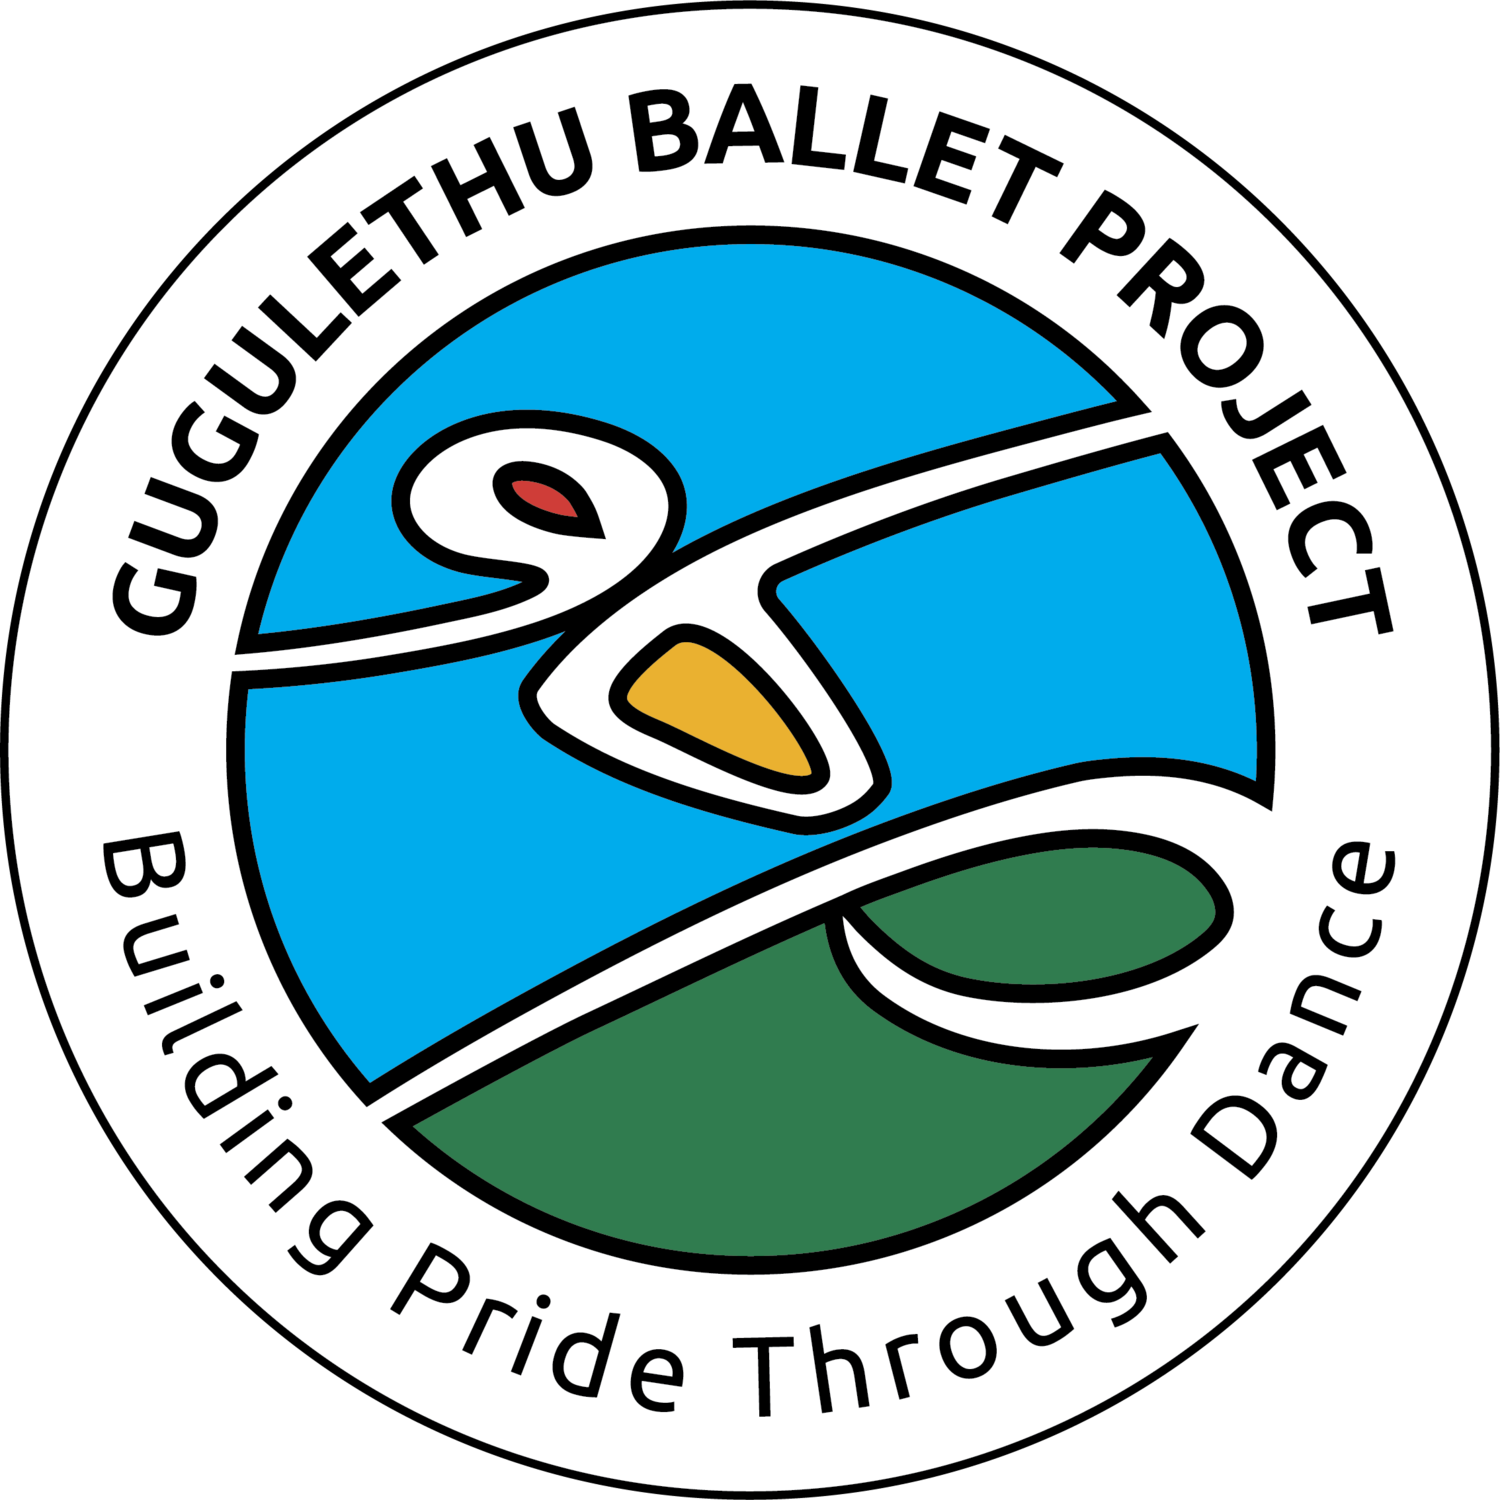 Gugulethu Ballet Project | Building Pride though Dance